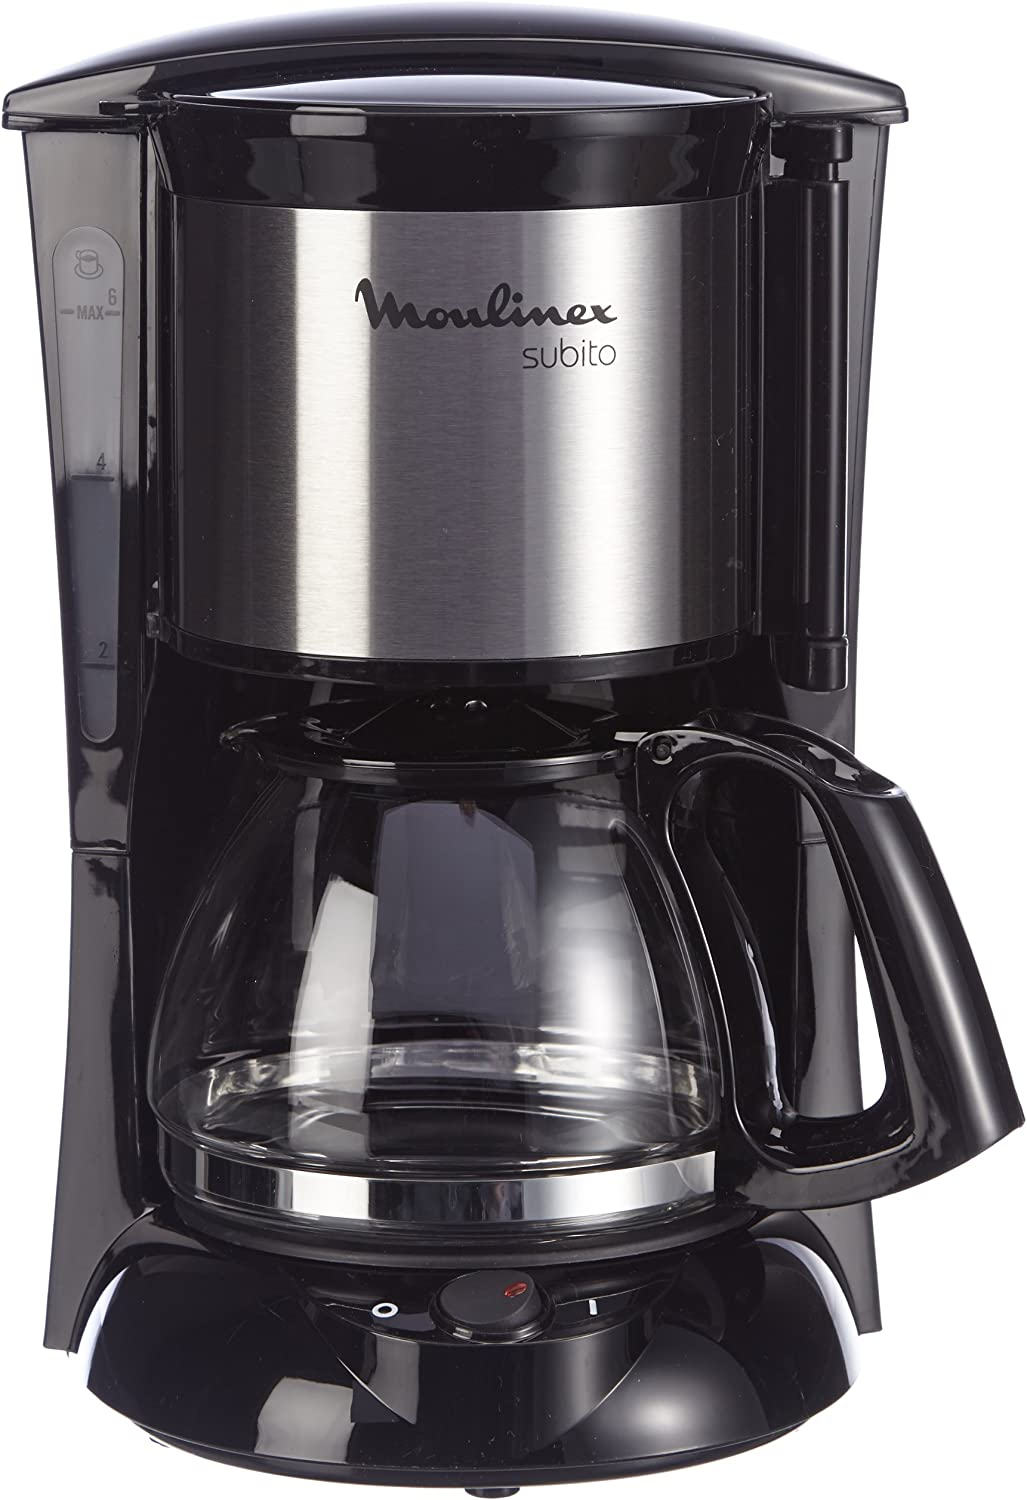 Moulinex FG1508 - Cafetera de goteo, 650 W, color negro: Amazon.es ...